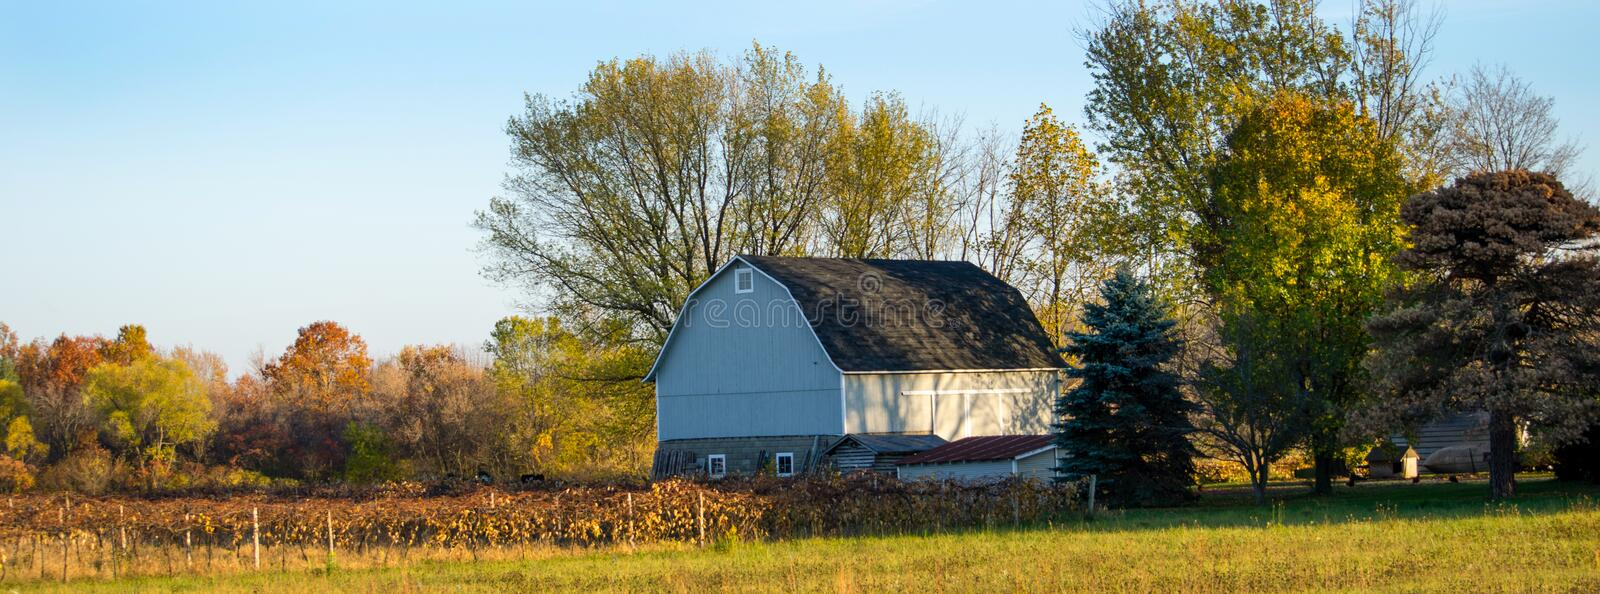 Field and barn royalty free stock image